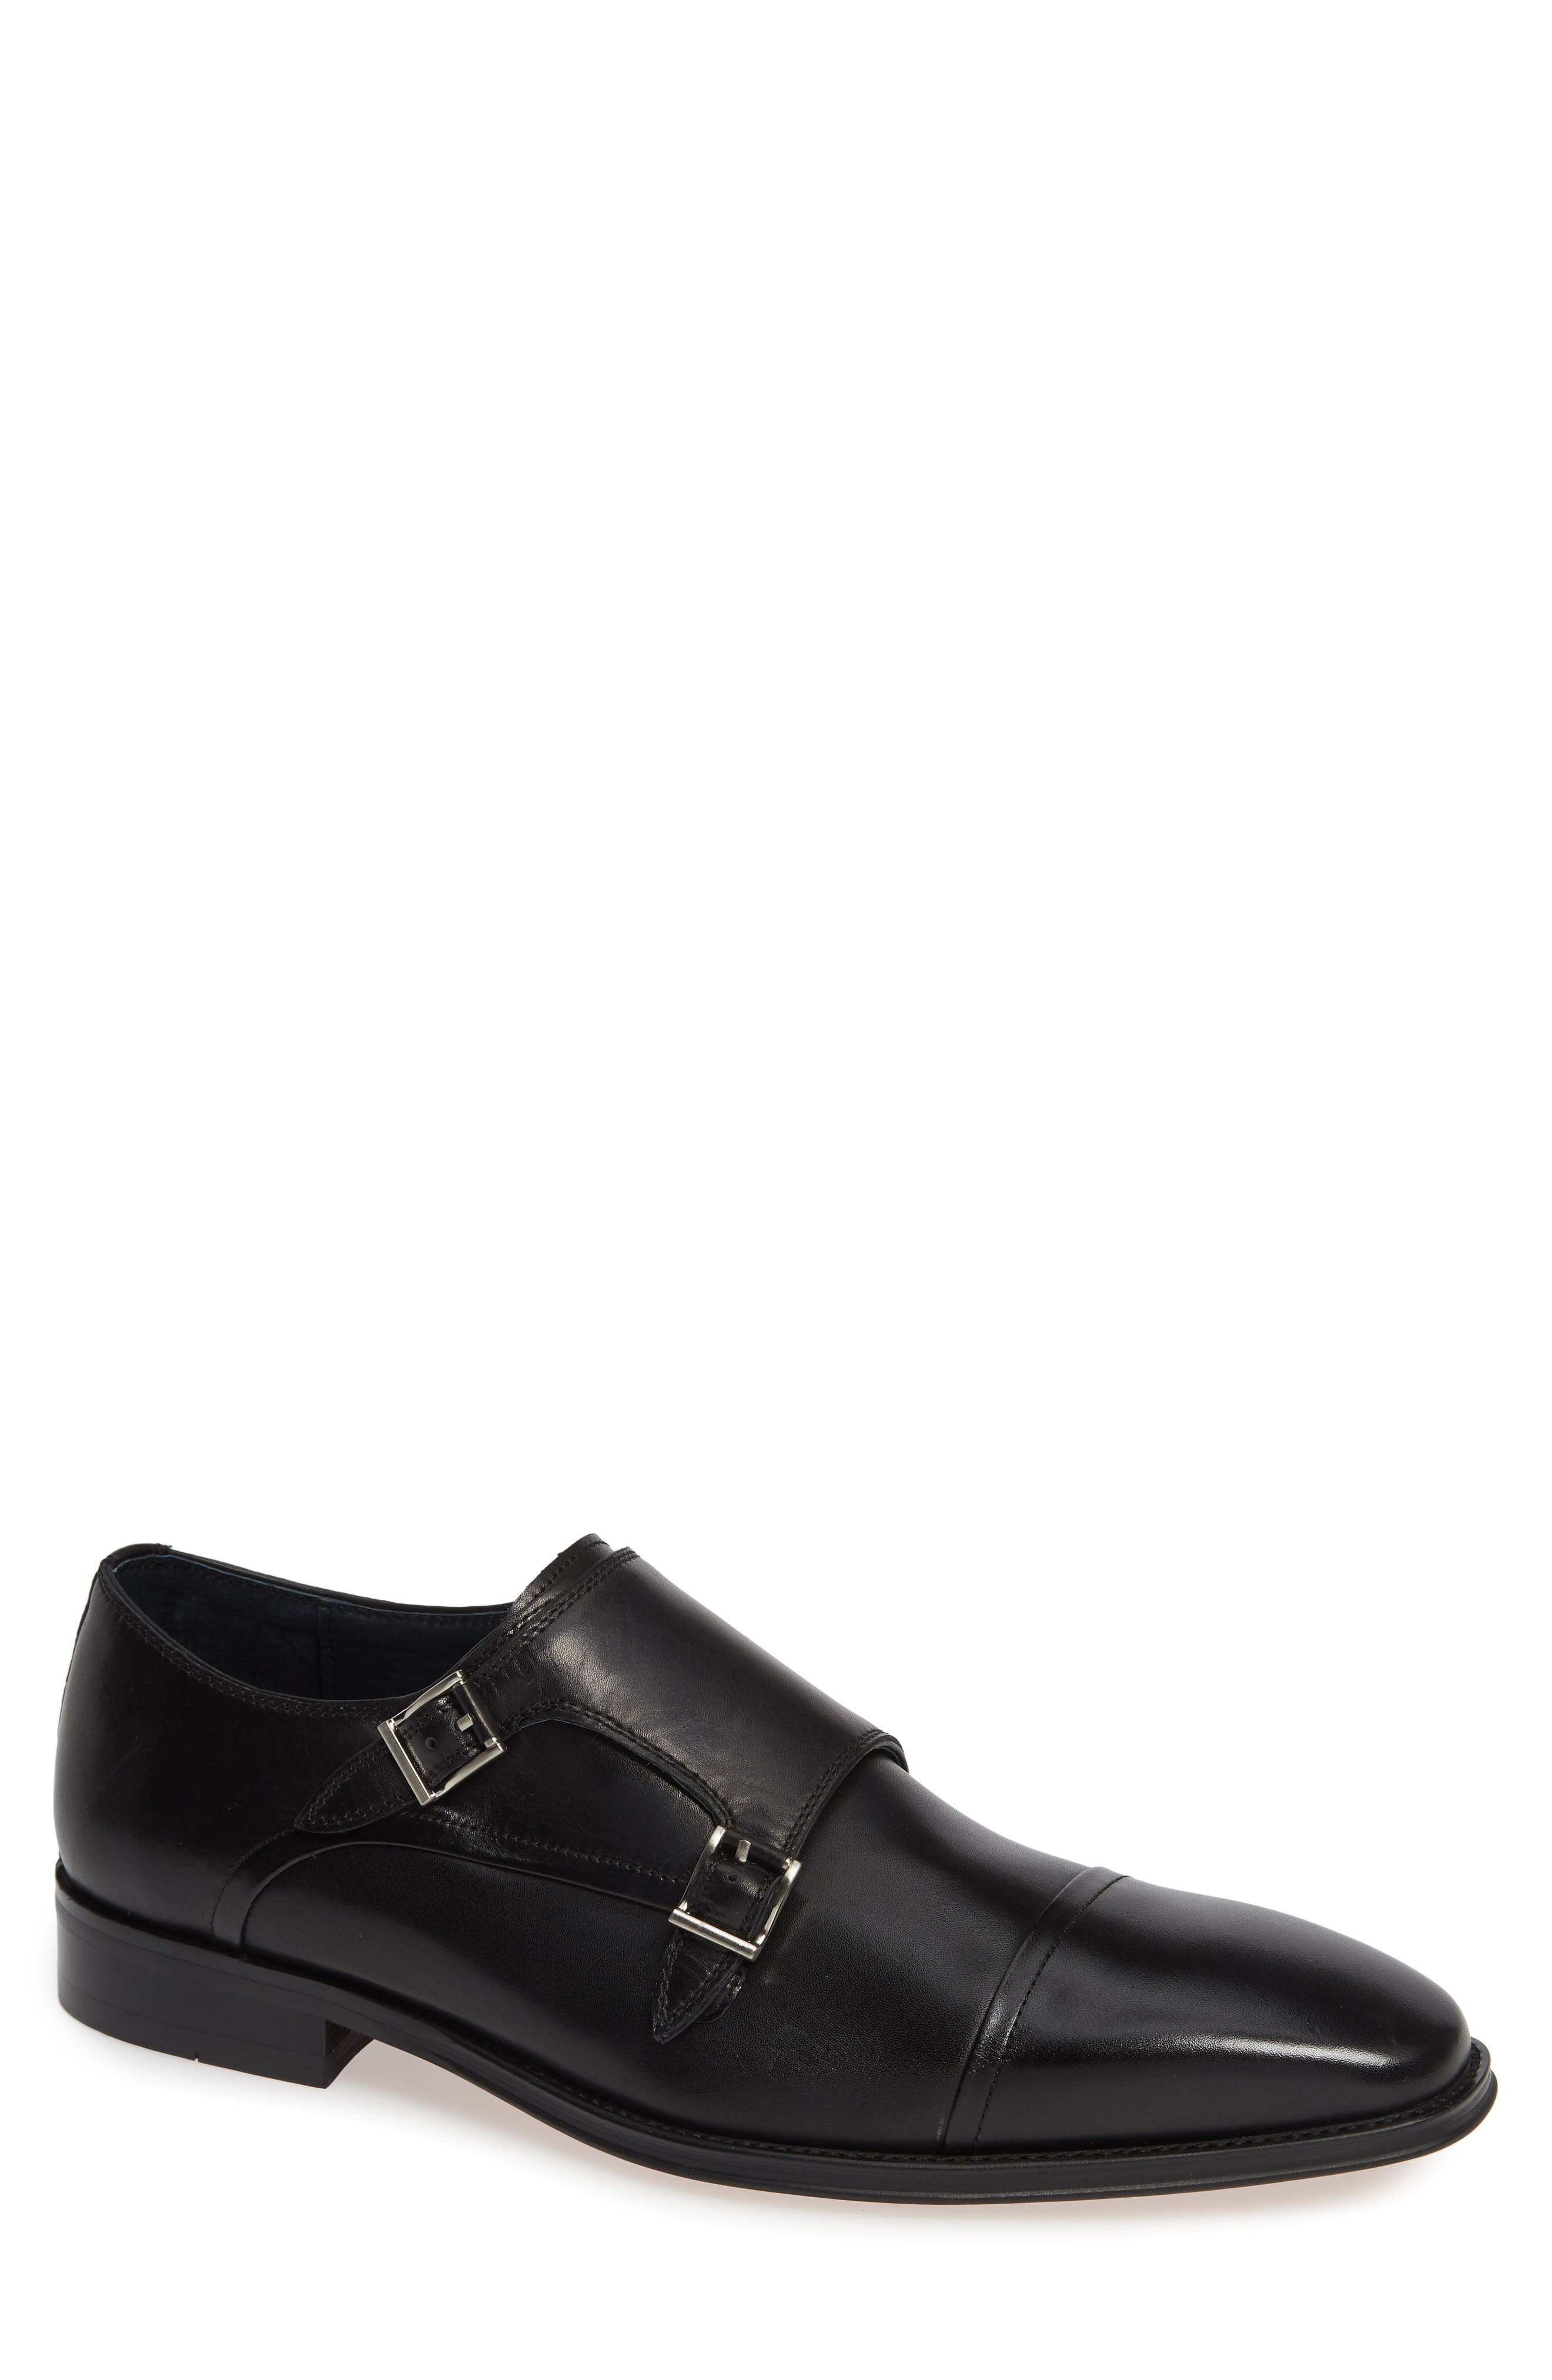 Mario Double Monk Strap Shoe, Main, color, BLACK LEATHER